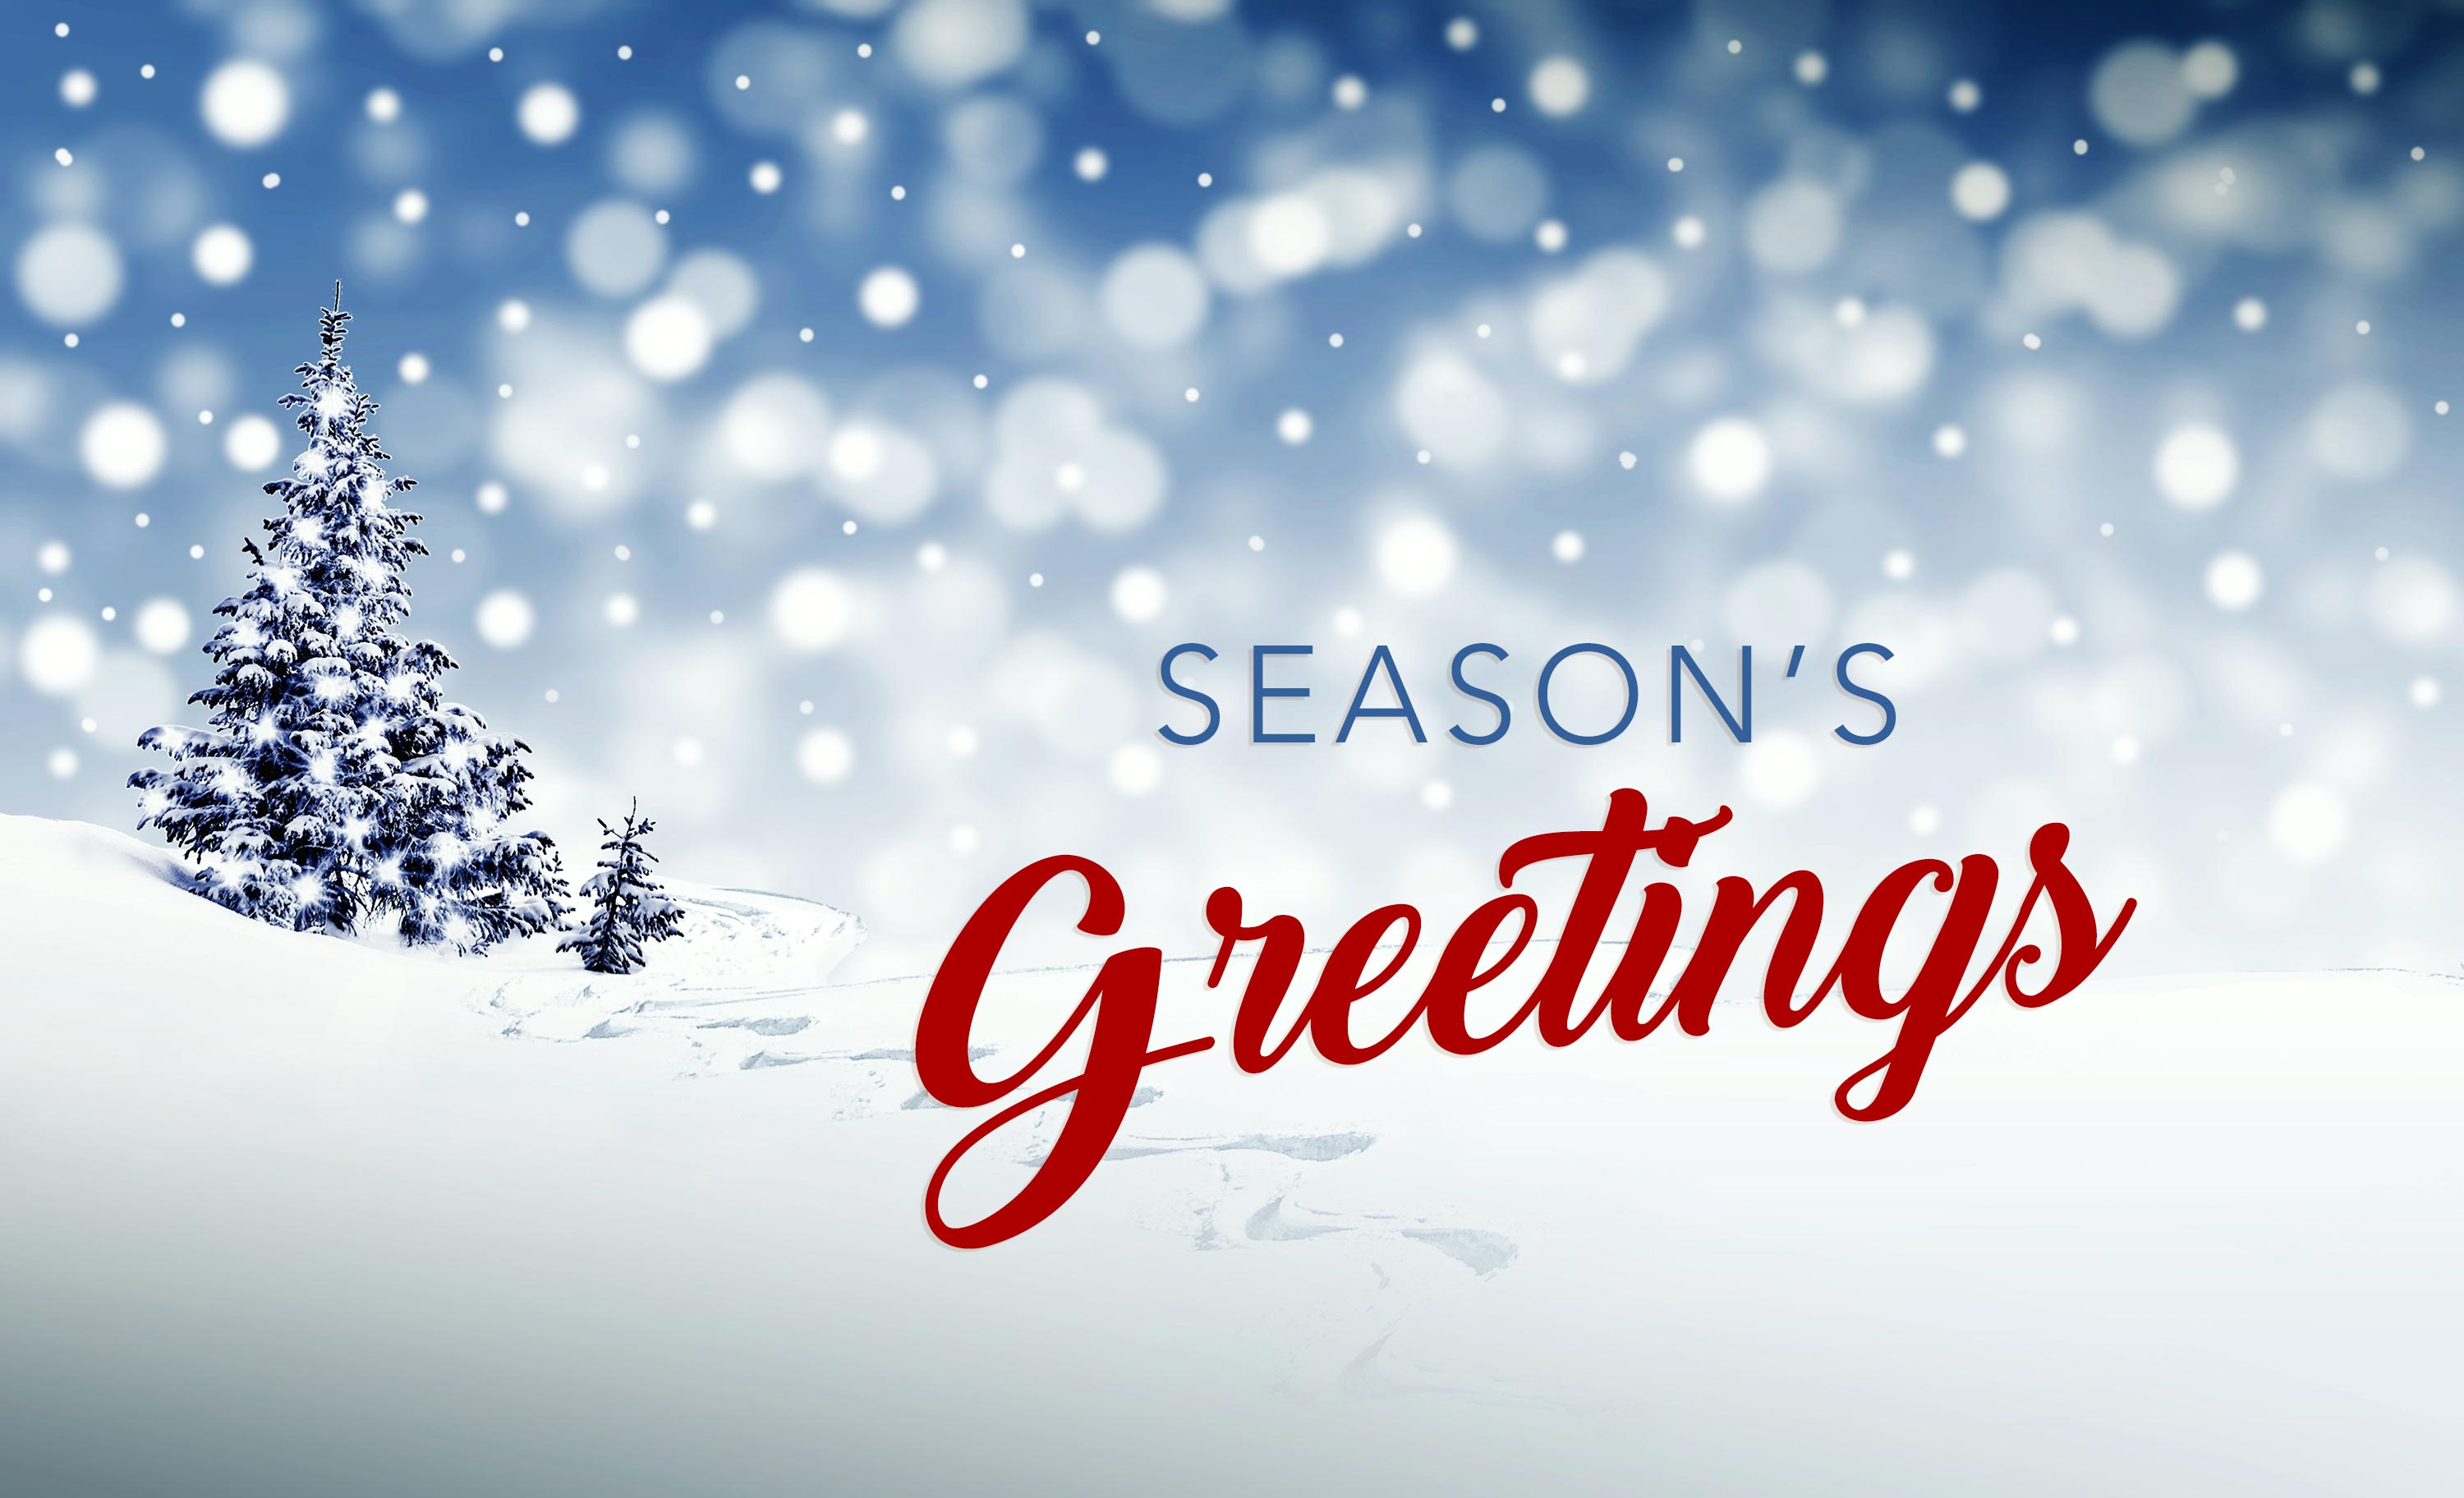 download 15 Seasons Greetings Cards Stock Images HD 3000x1824